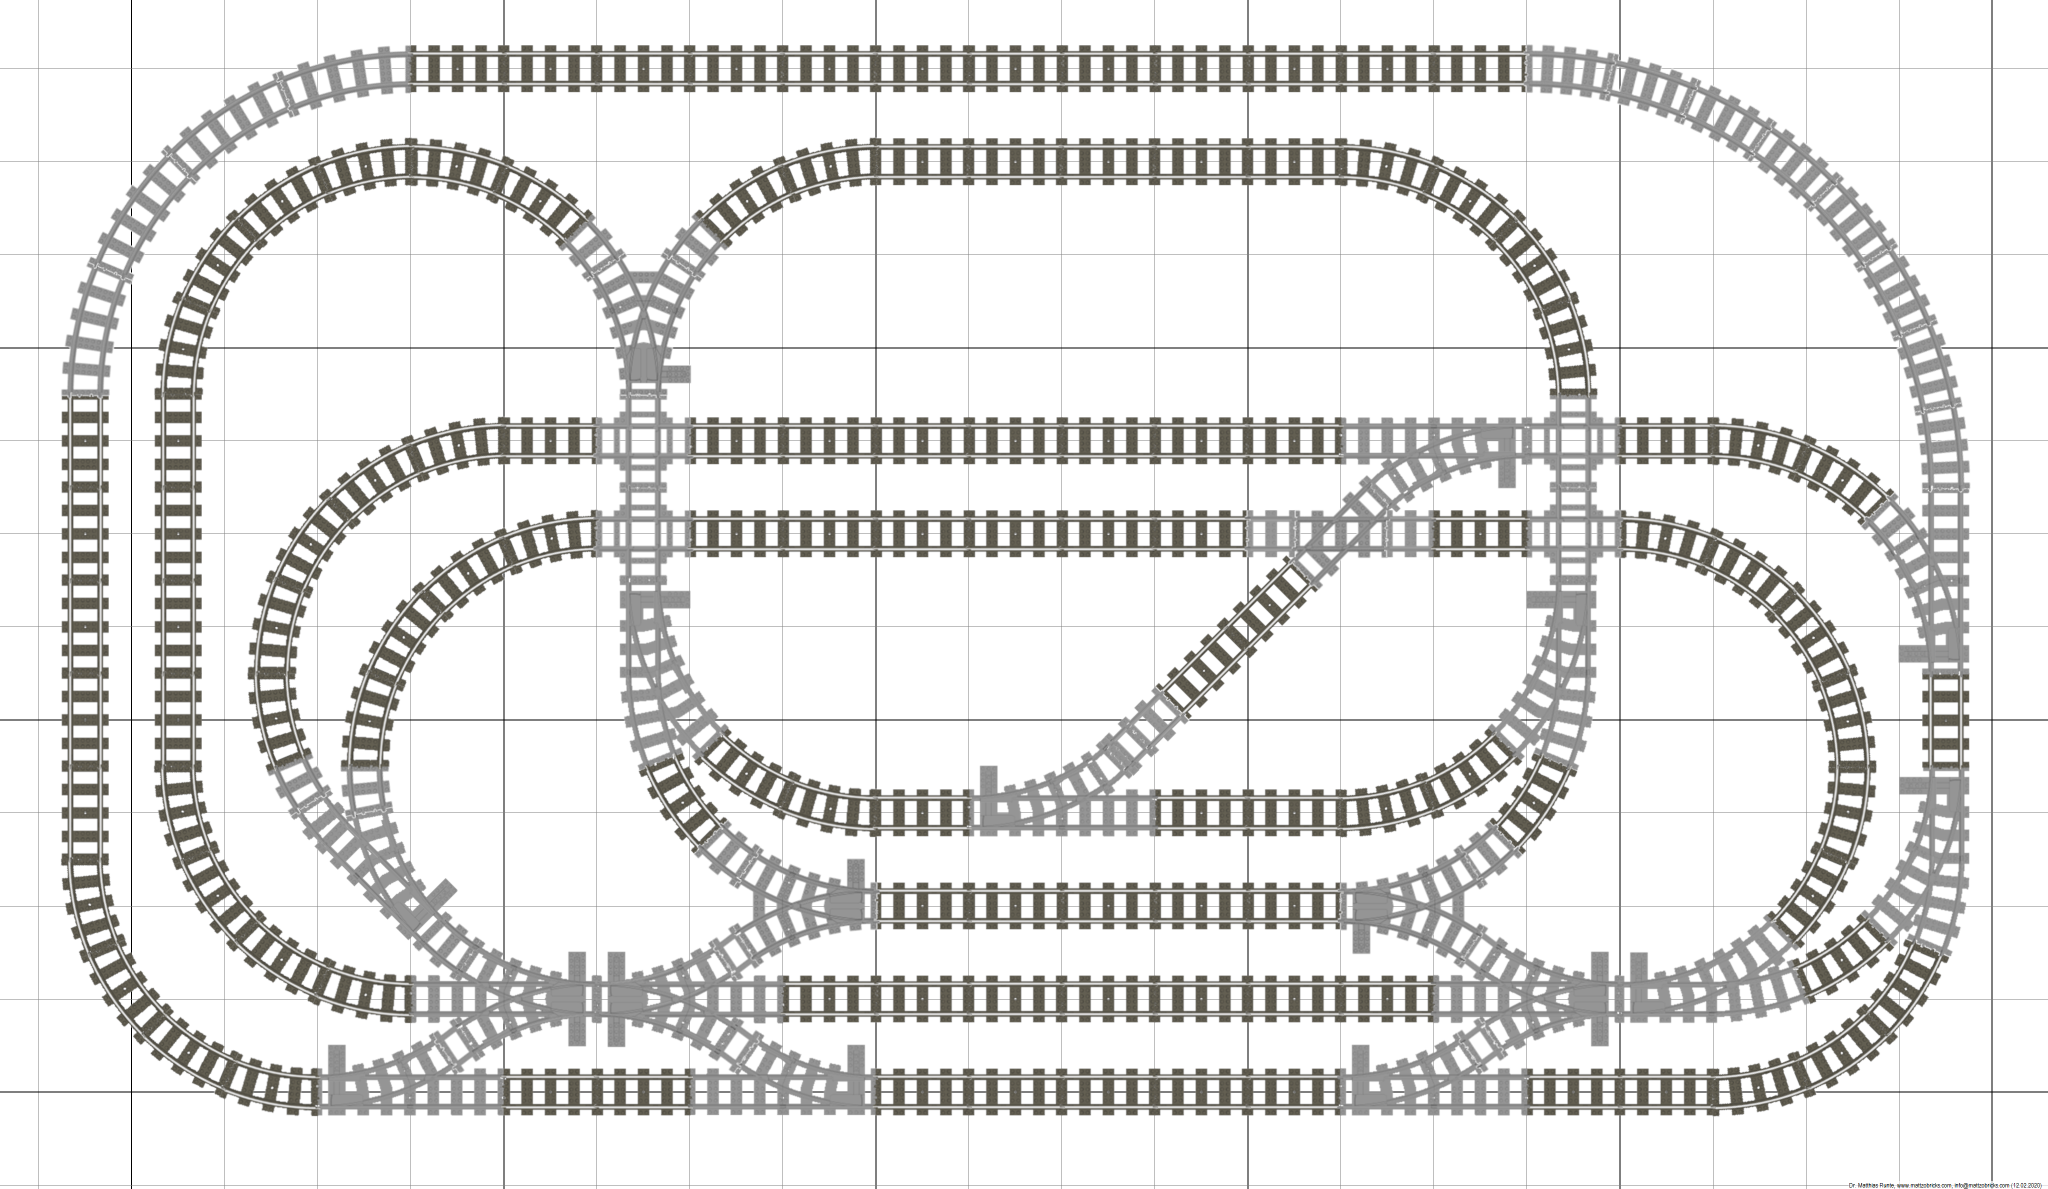 Trixbrix Eu Lego Compatible Train Tracks